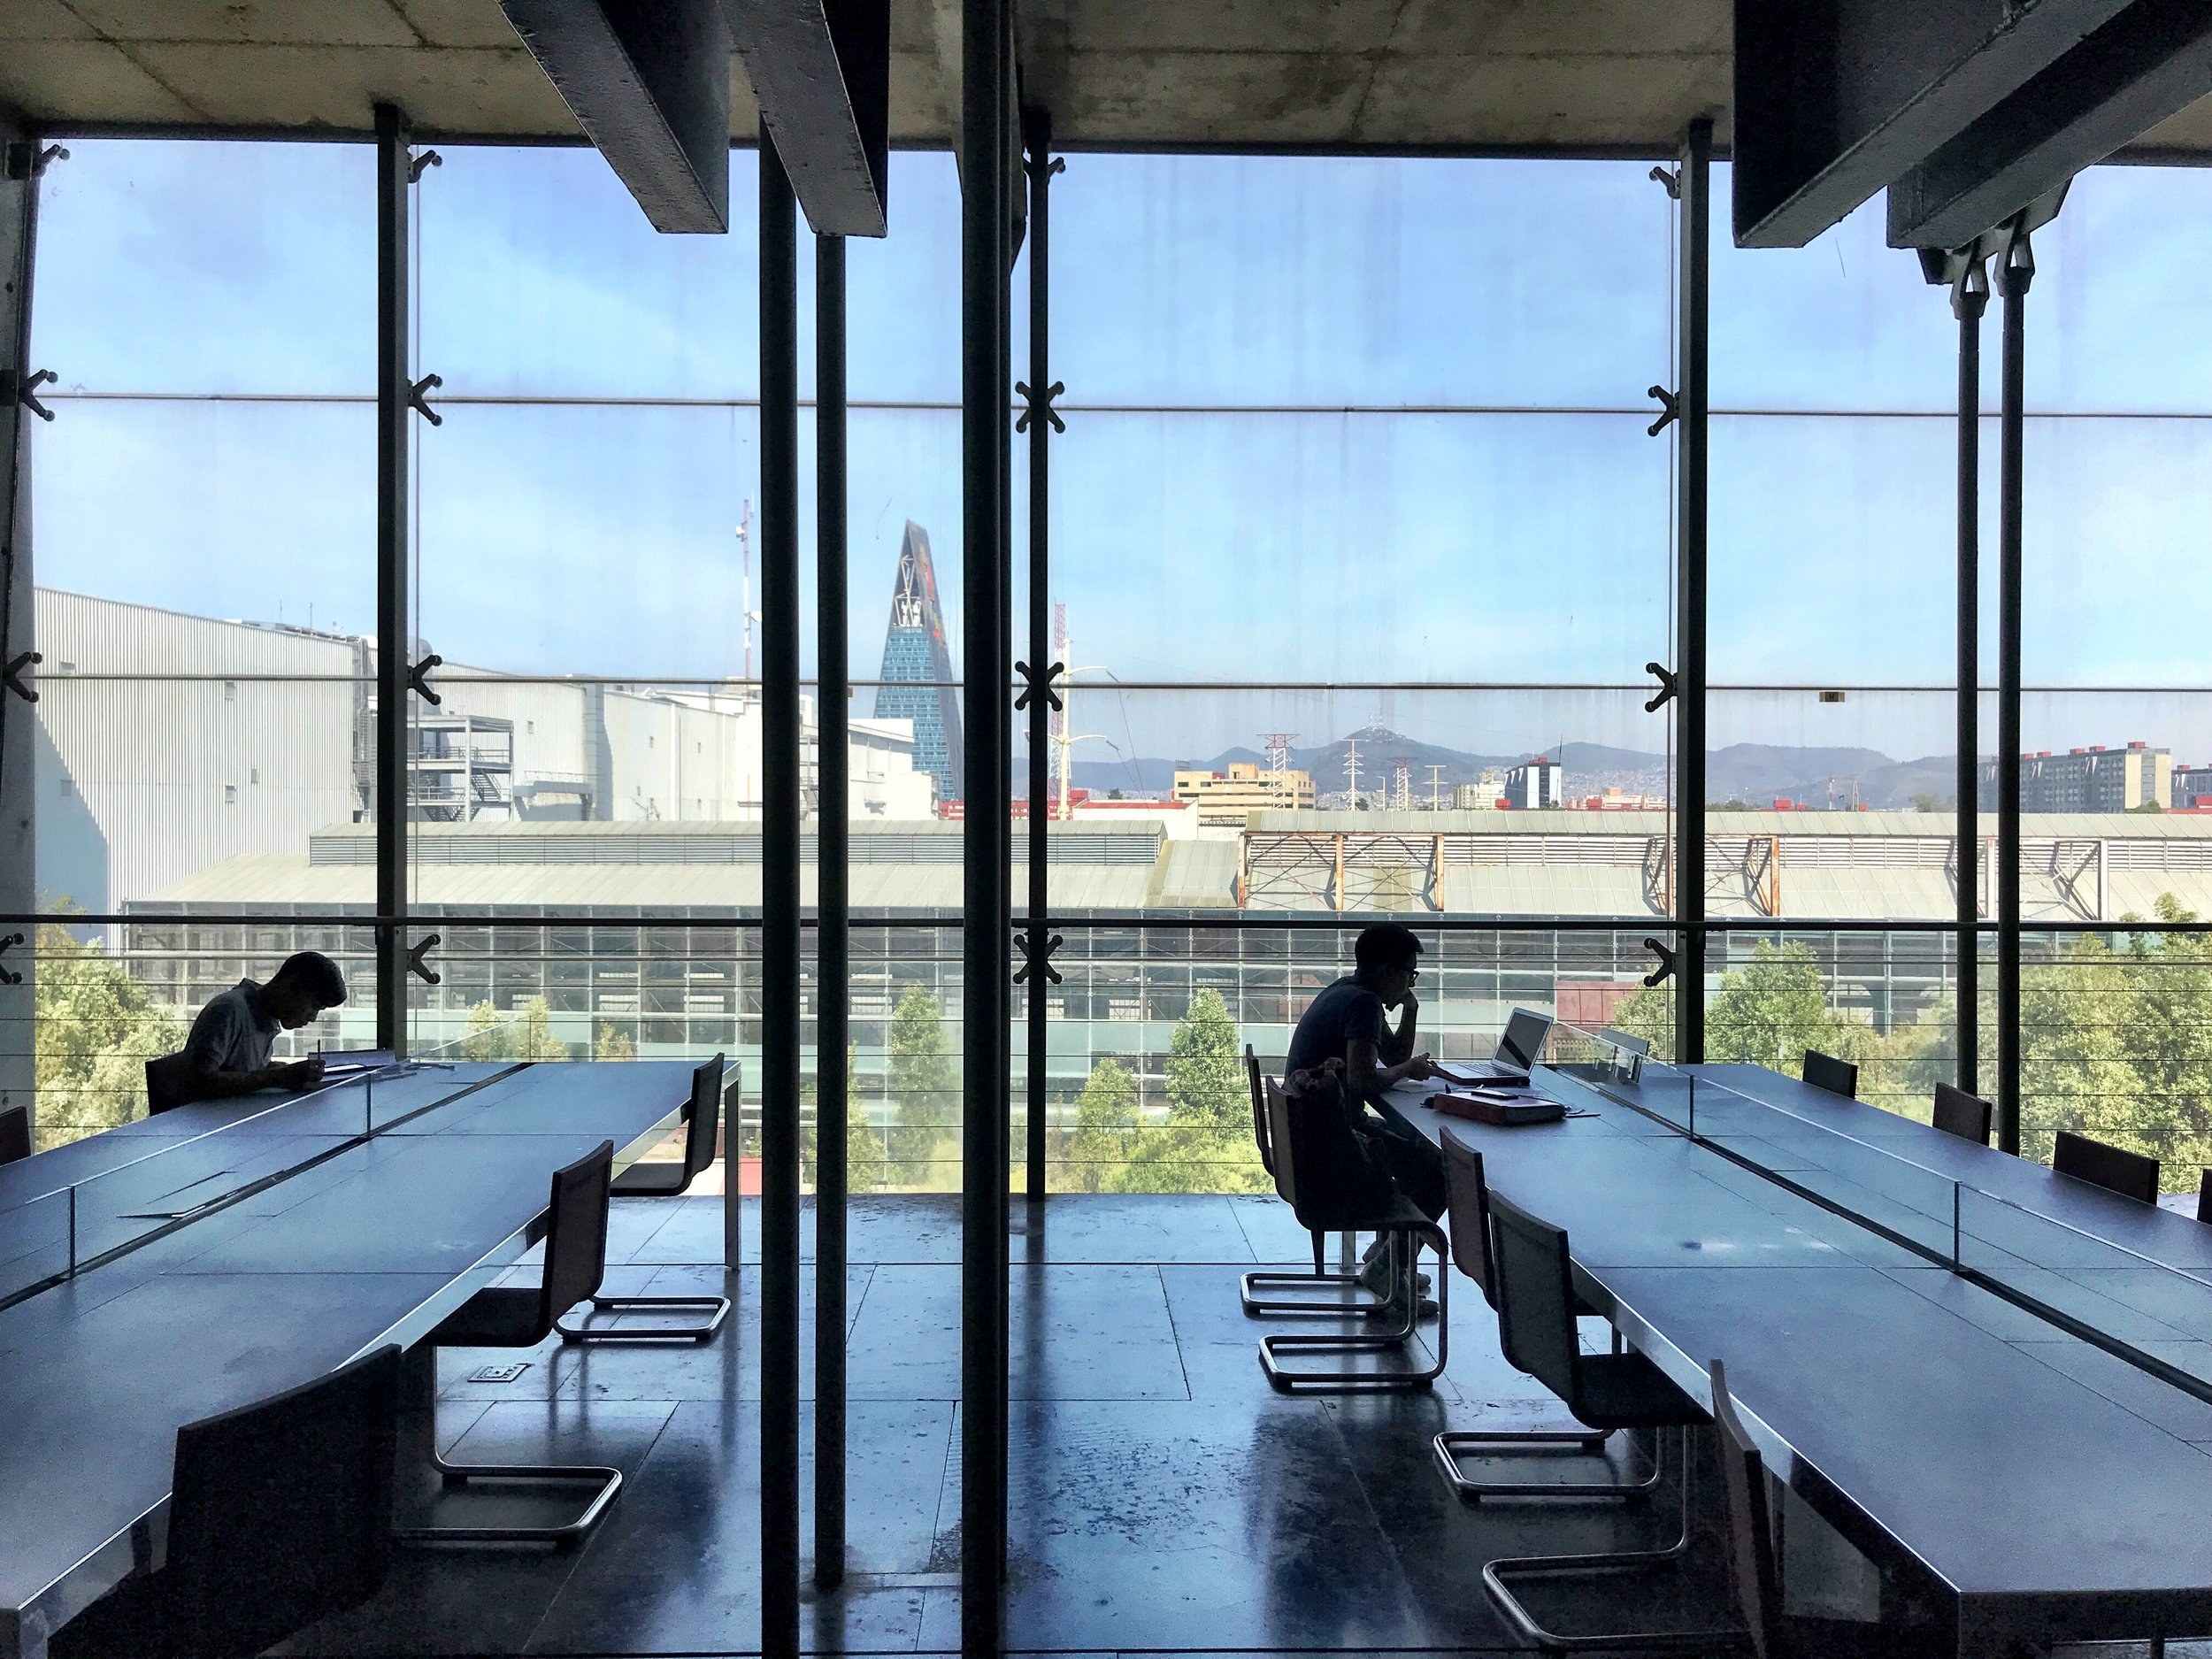 The far ends of the library offer expansive views of the city